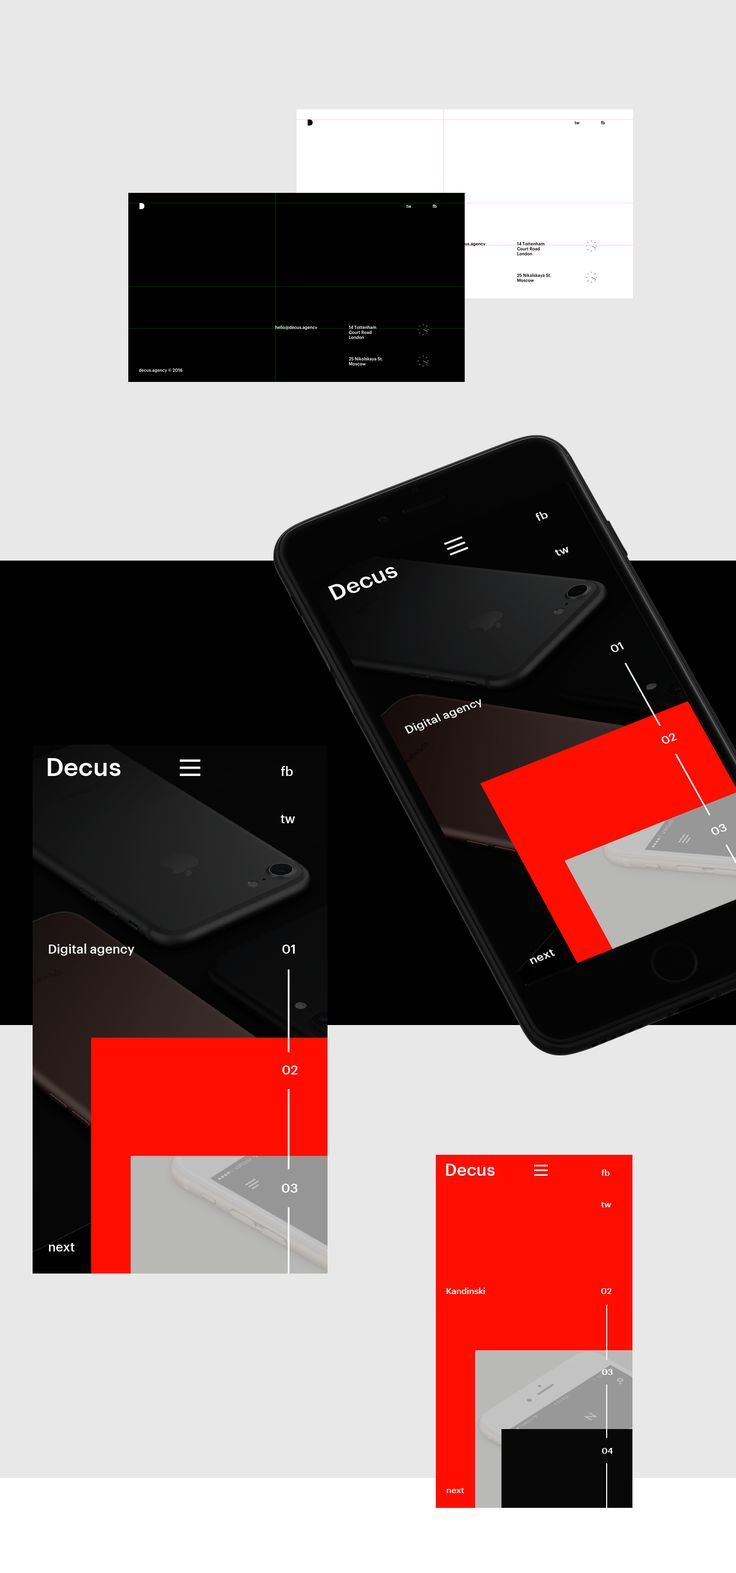 Decus. Digital agency web page concept